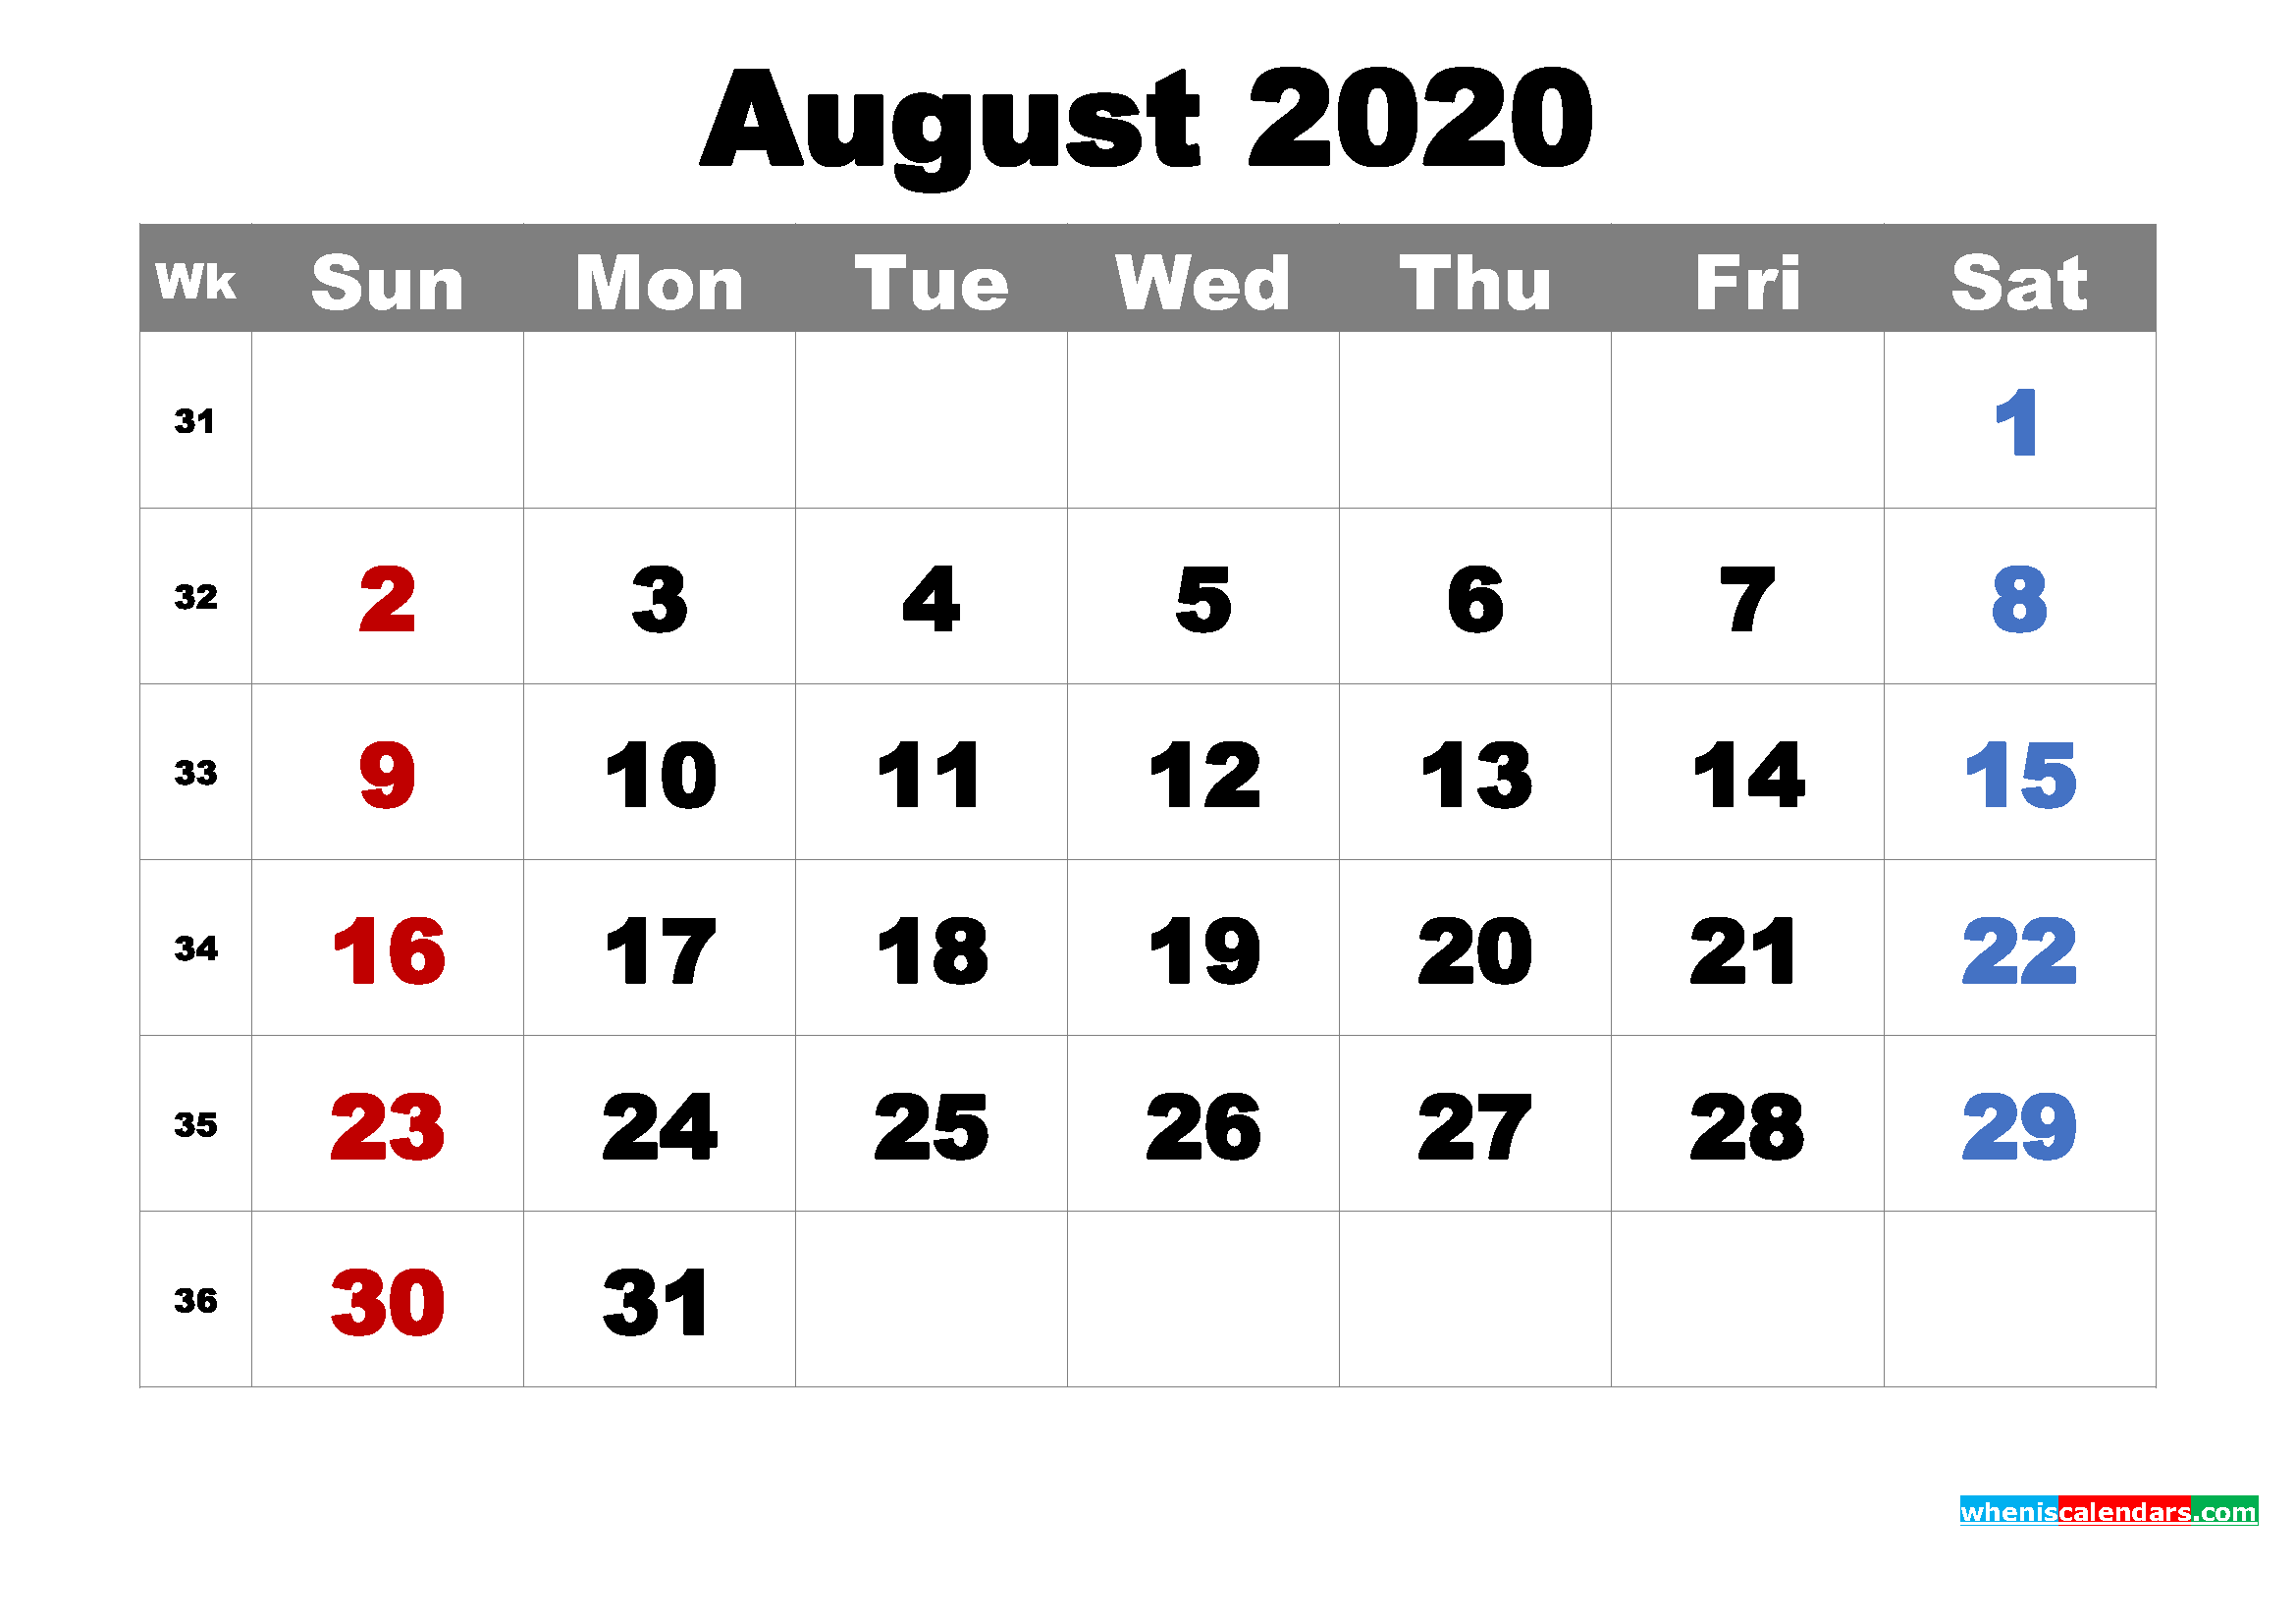 Printable Calendar August 2020 with Holidays as Word, PDF